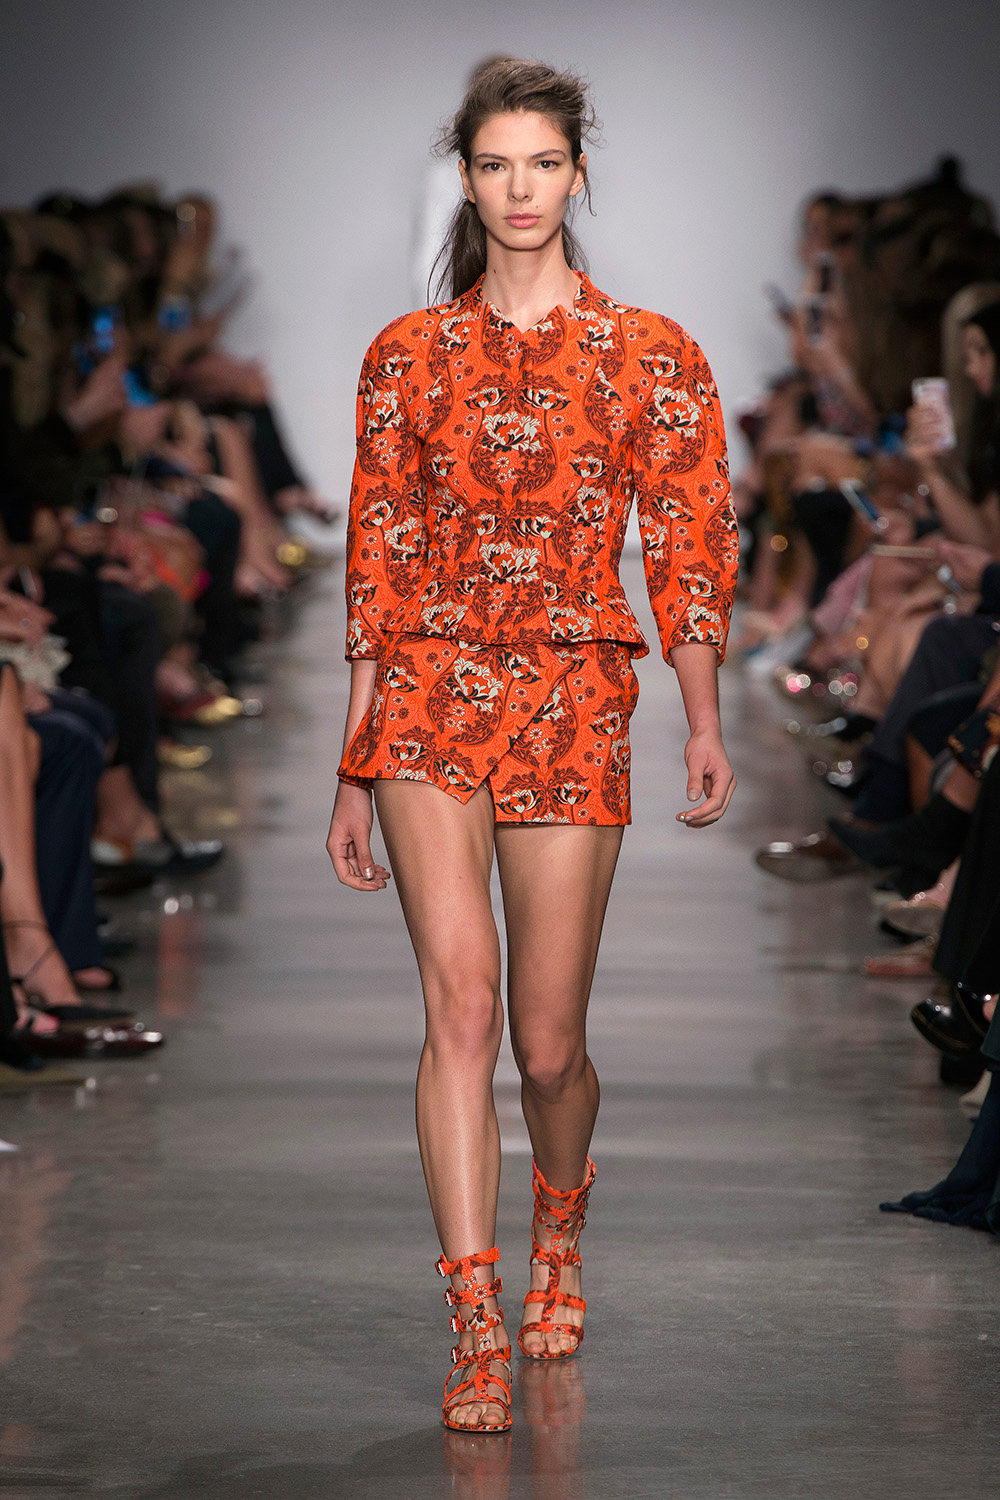 Look 2: Orange Jacket and Shorts